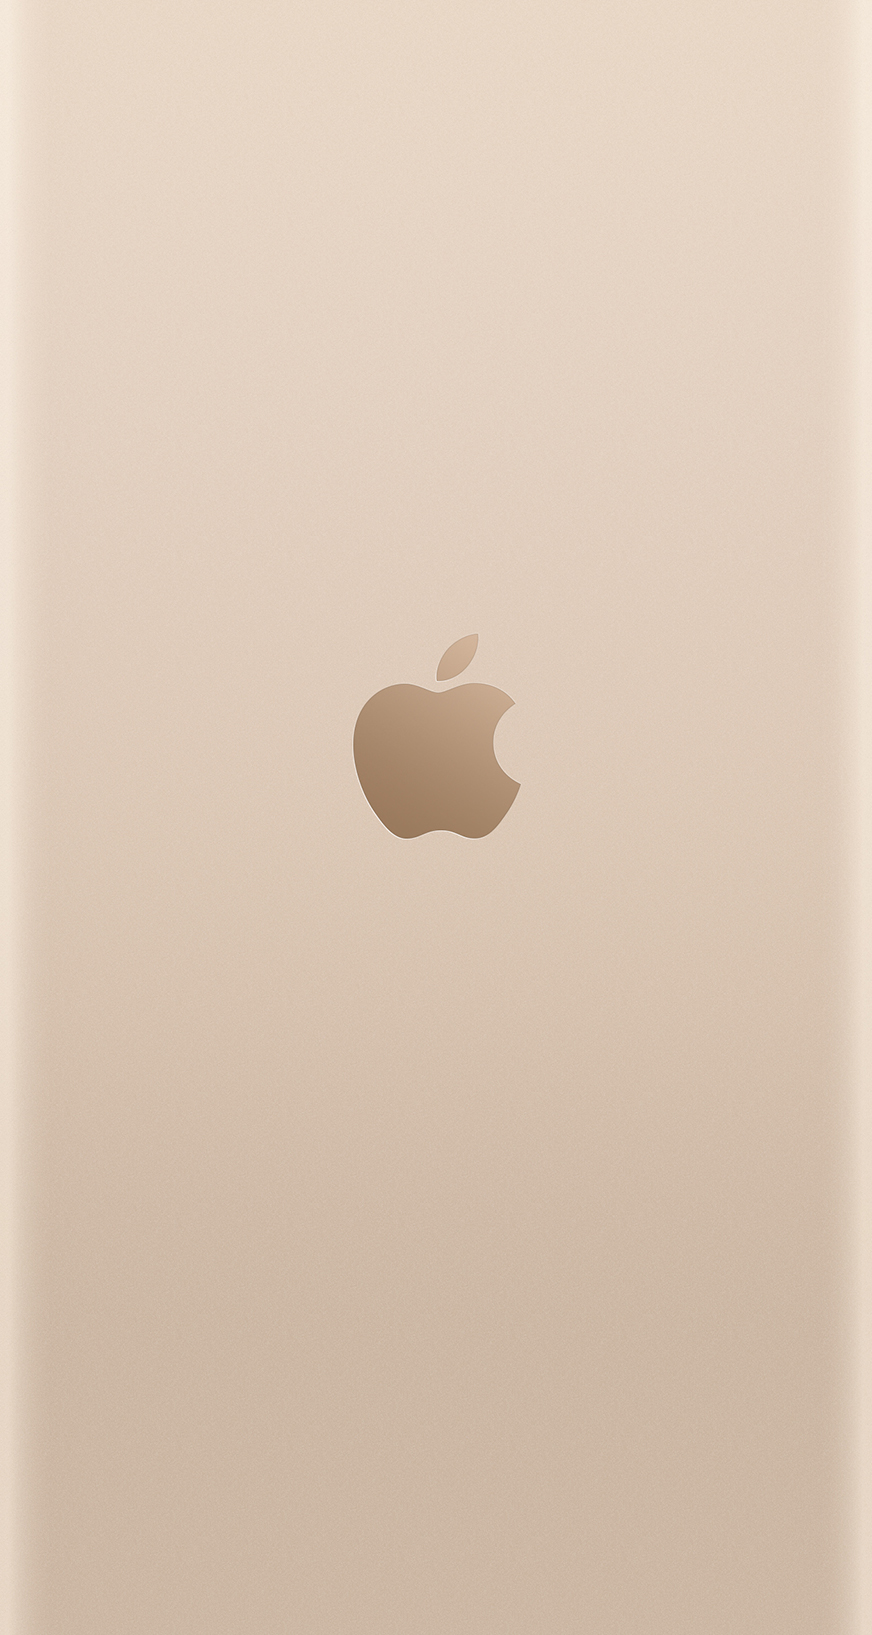 44 Iphone 6 Gold Wallpaper On Wallpapersafari